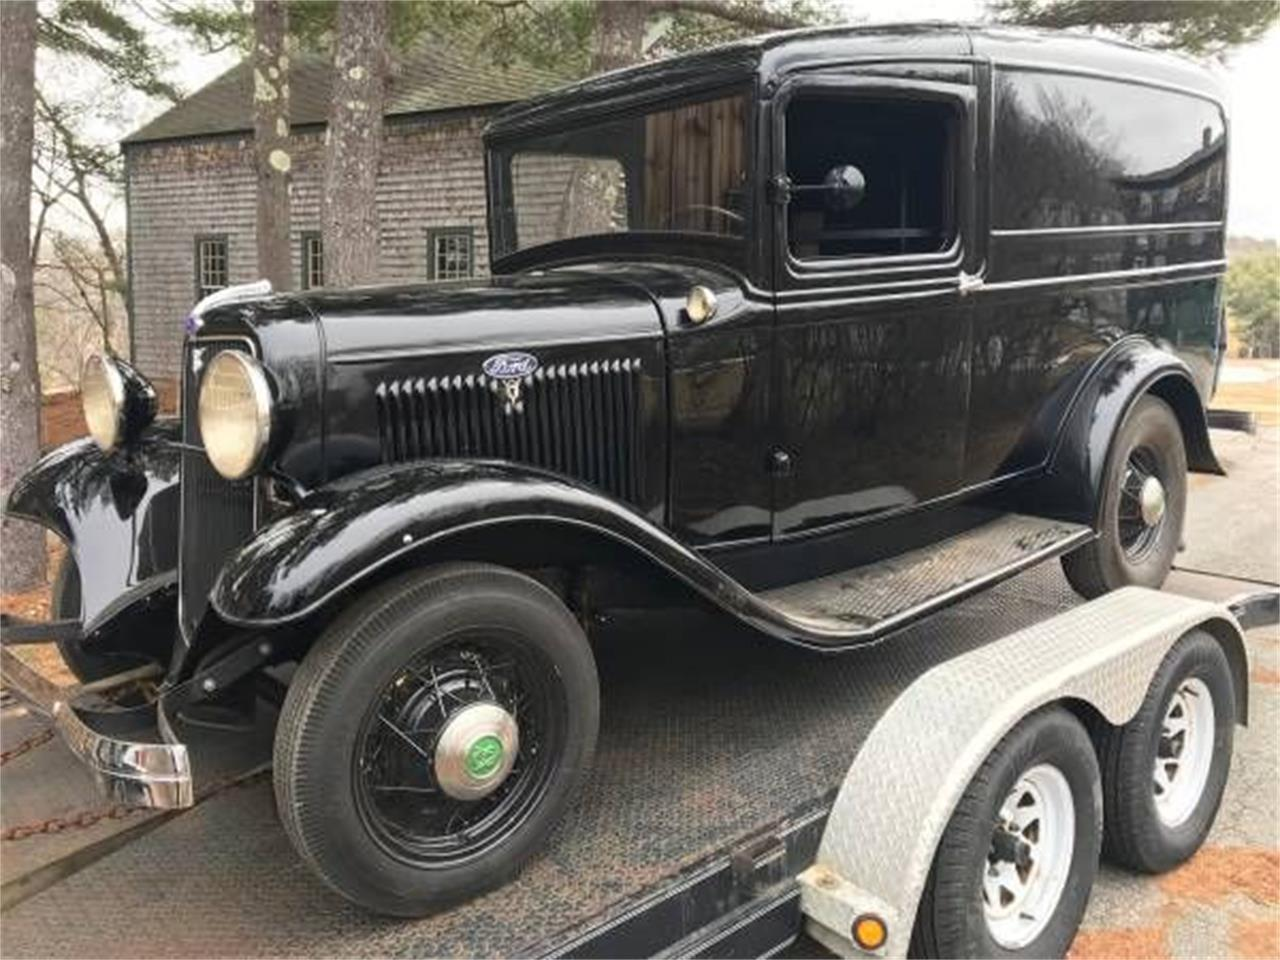 1934 Ford Panel Truck for sale in Cadillac, MI